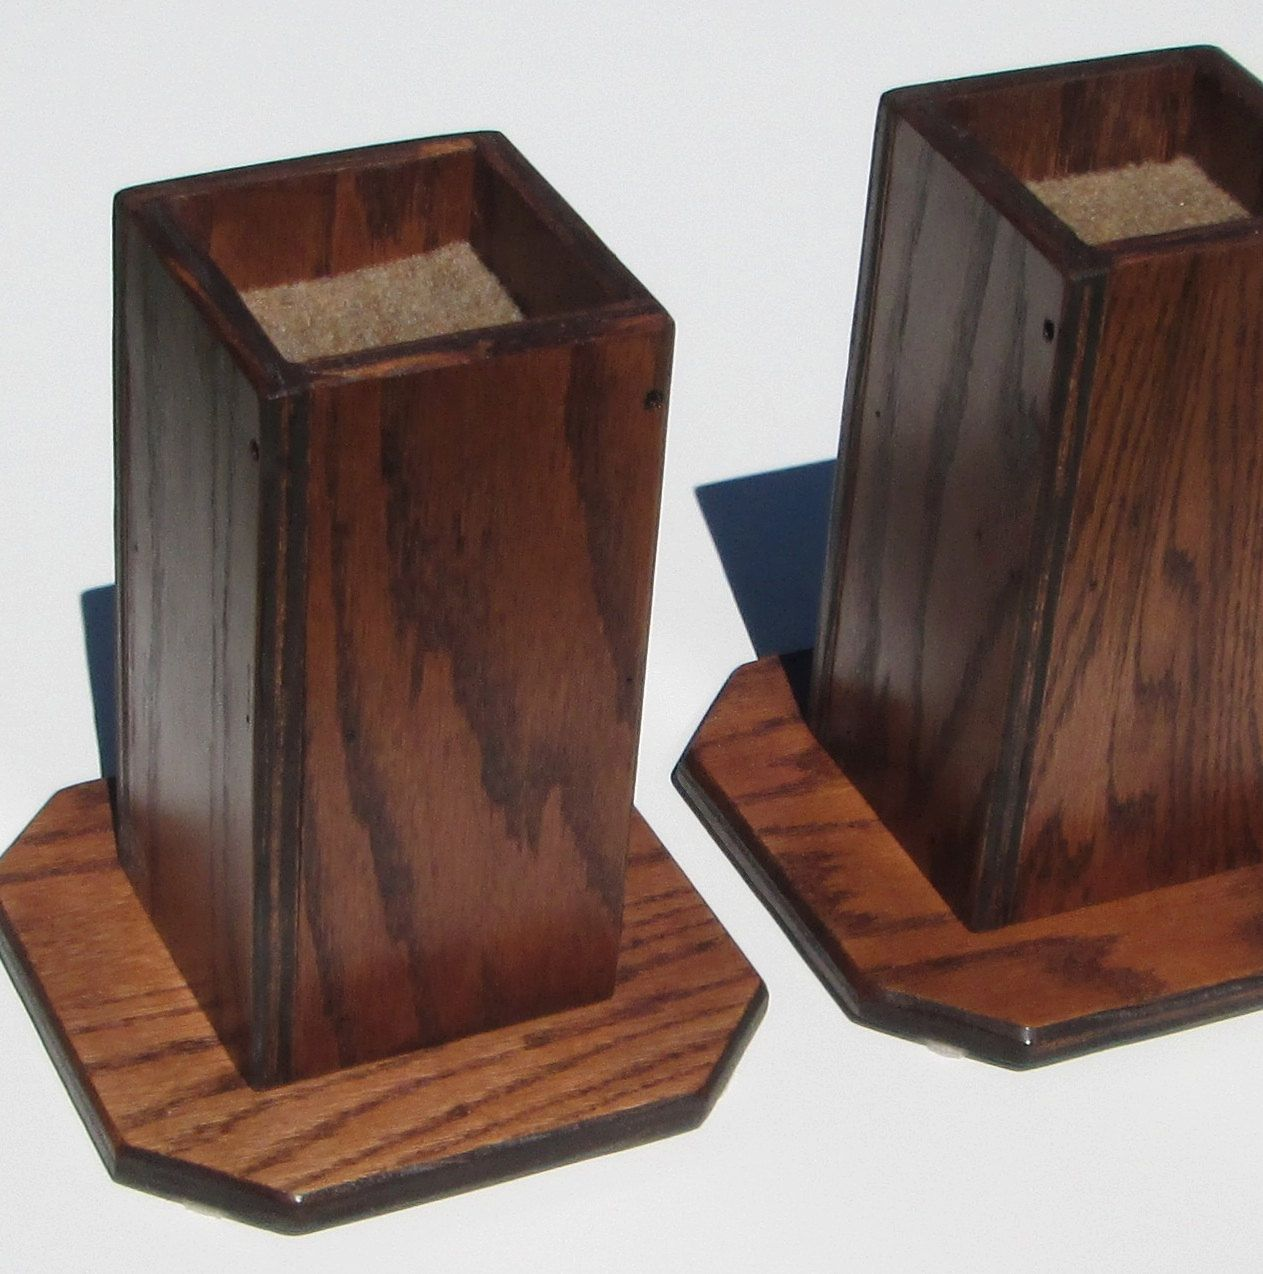 Furniture Risers 6 Inch All Wood Construction Sleek By Odyssey359